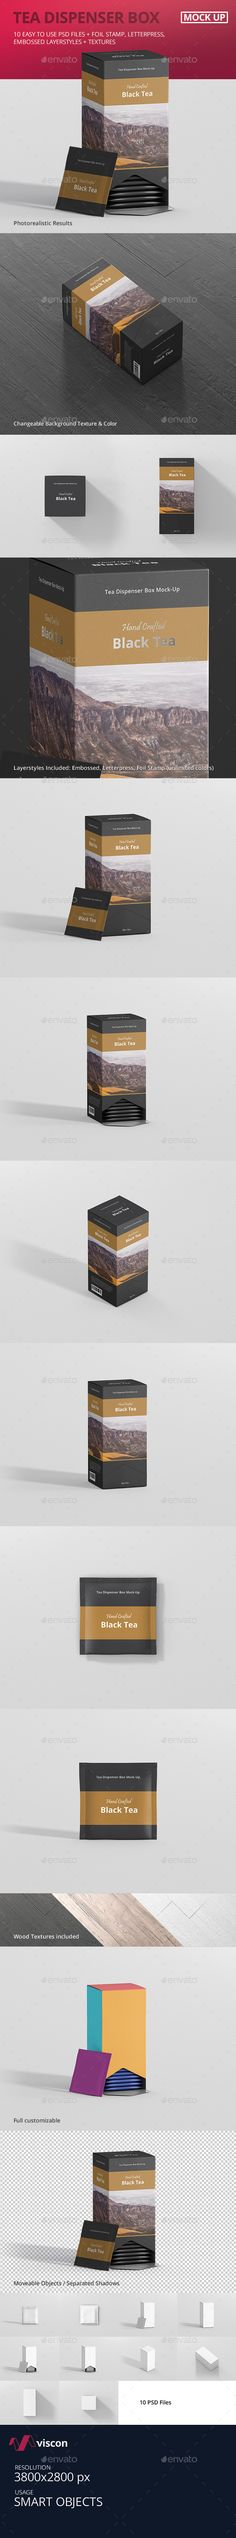 Tea Dispenser Box Mockup by visconbiz Full customizable Tea Packaging MockupCreate a tea packaging design in seconds with these high quality tea box mockups for print